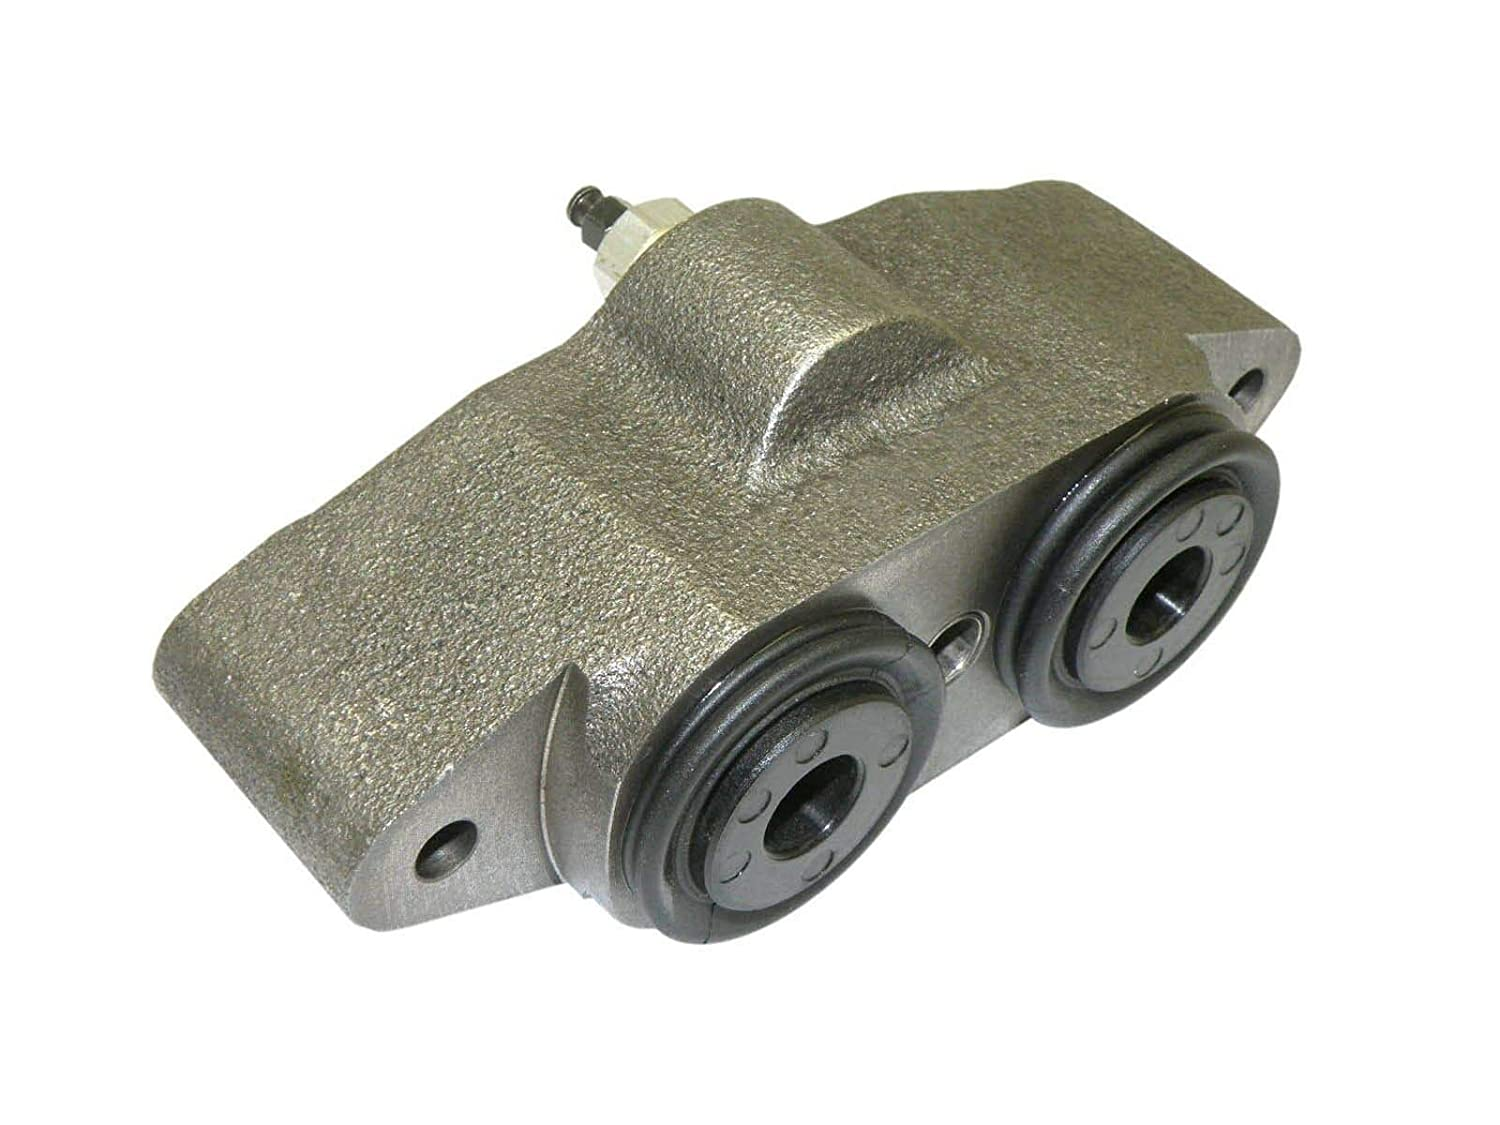 PANGOLIN 41-350-68 Hydraulic Brake Body for Taylor Dunn Forklift Aftermarket Part 3 Month Warranty